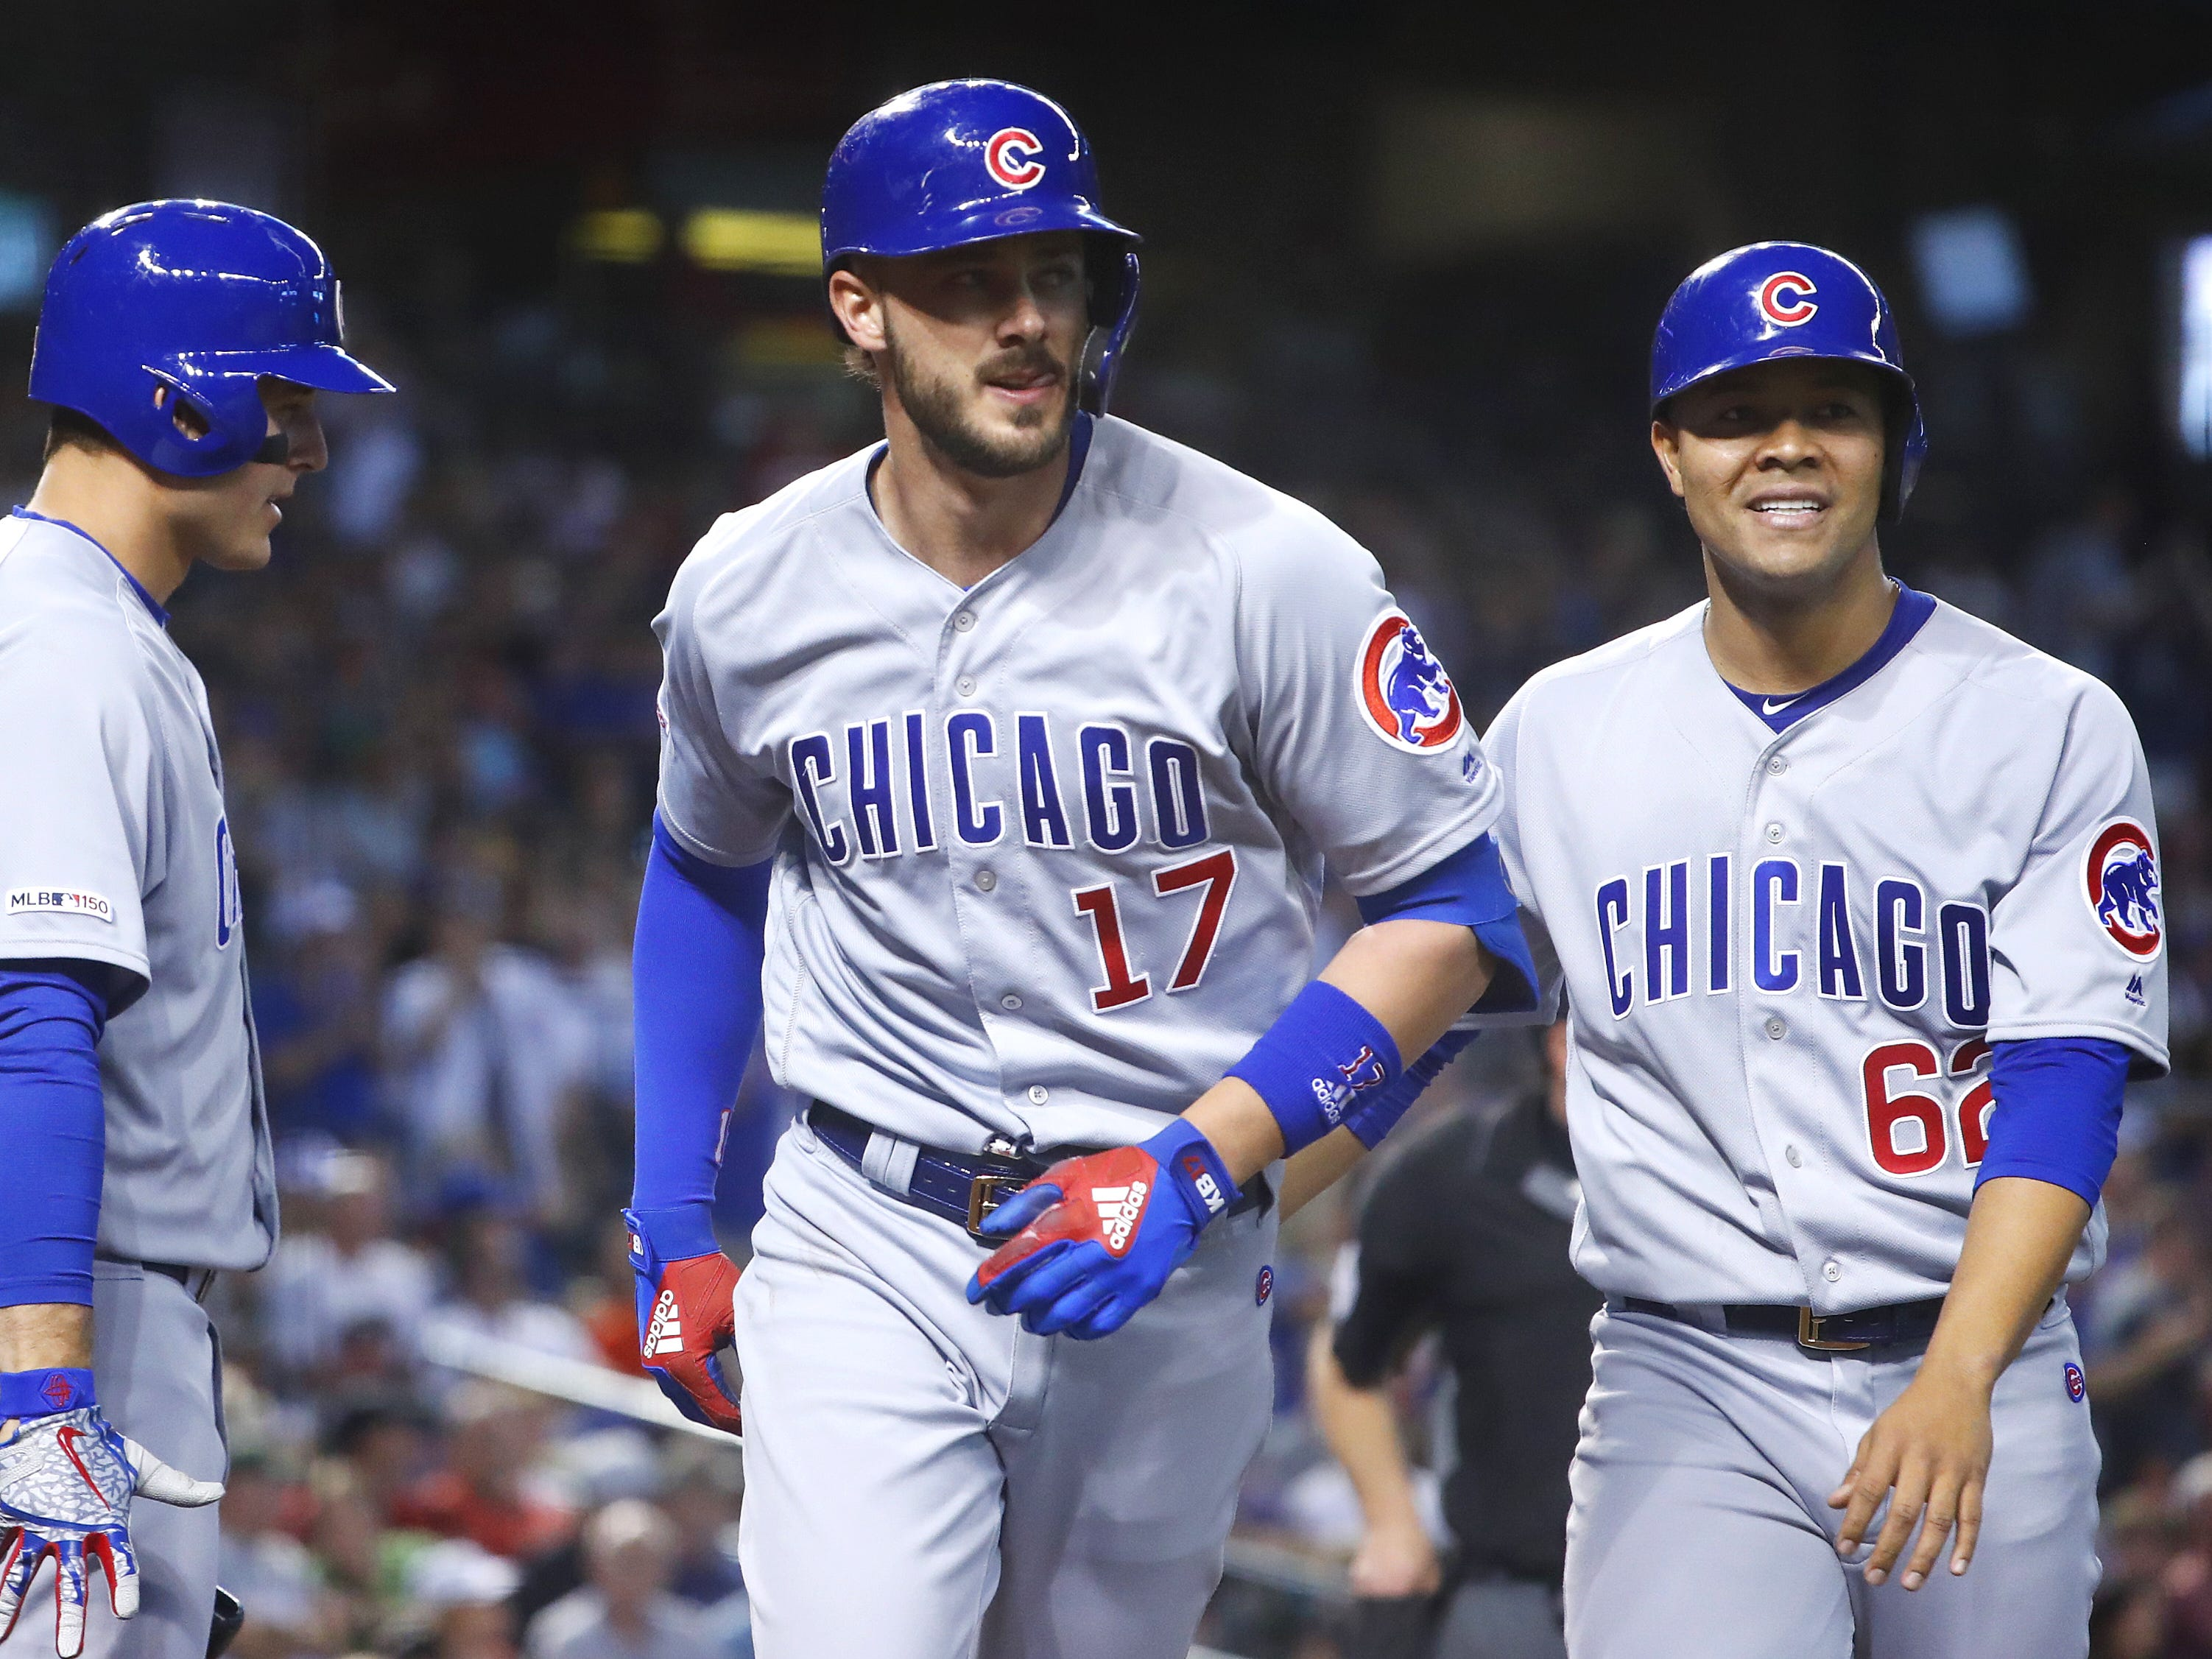 Cubs' Kris Bryant (17) celebrates with pitcher Jose Quintana (62) and Anthony Rizzo (44) after hitting a two-run homerun against the Diamondbacks during the third inning at Chase Field in Phoenix, Ariz. on April 28, 2019.